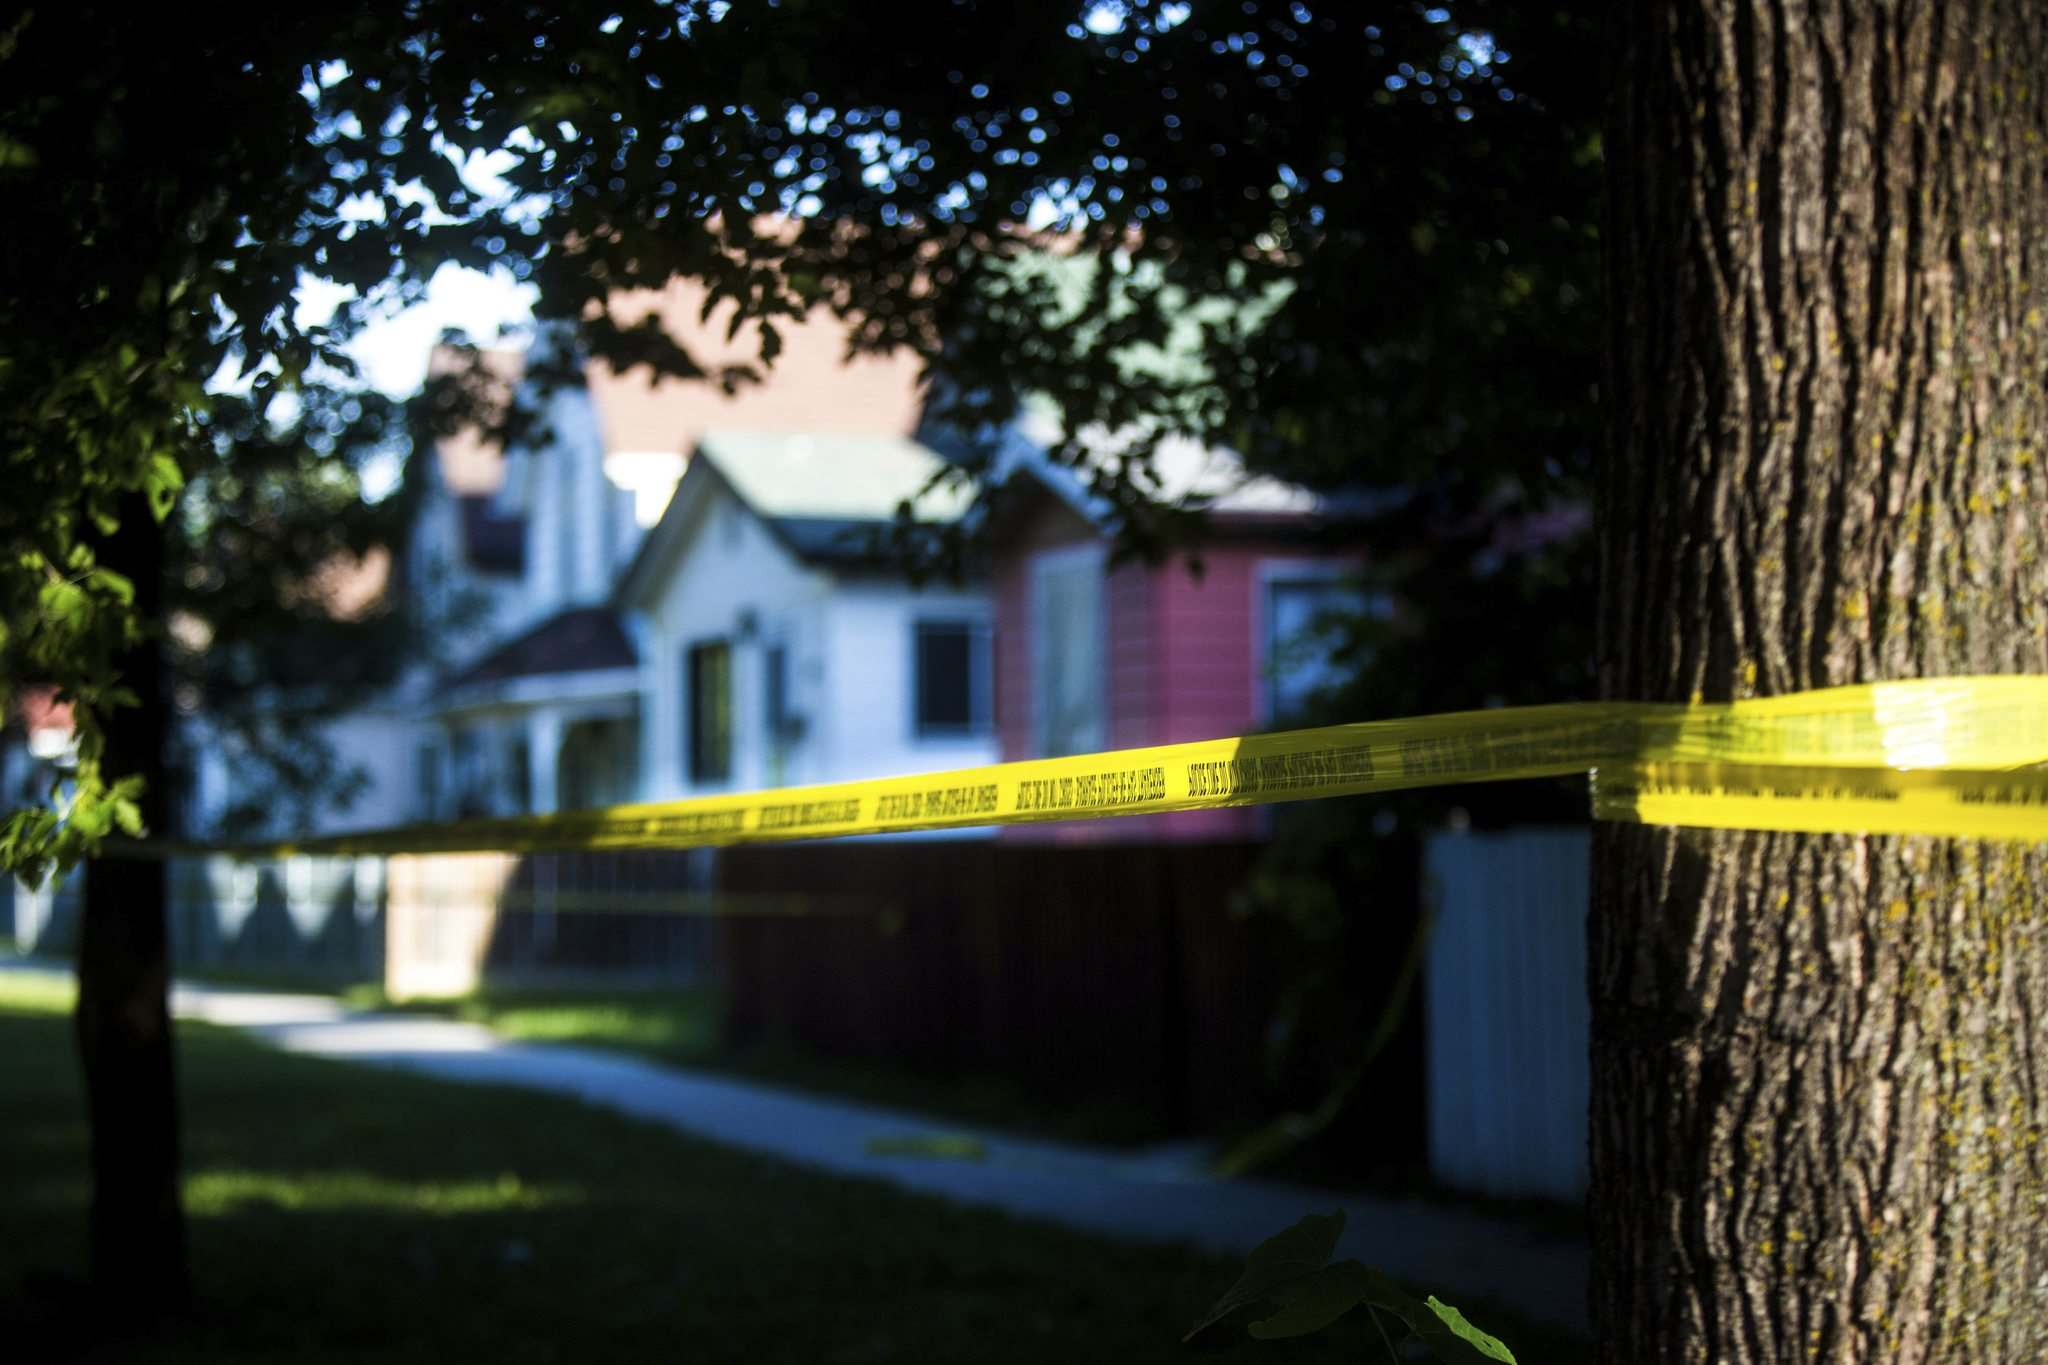 Police investigating North End death Thursday as homicide